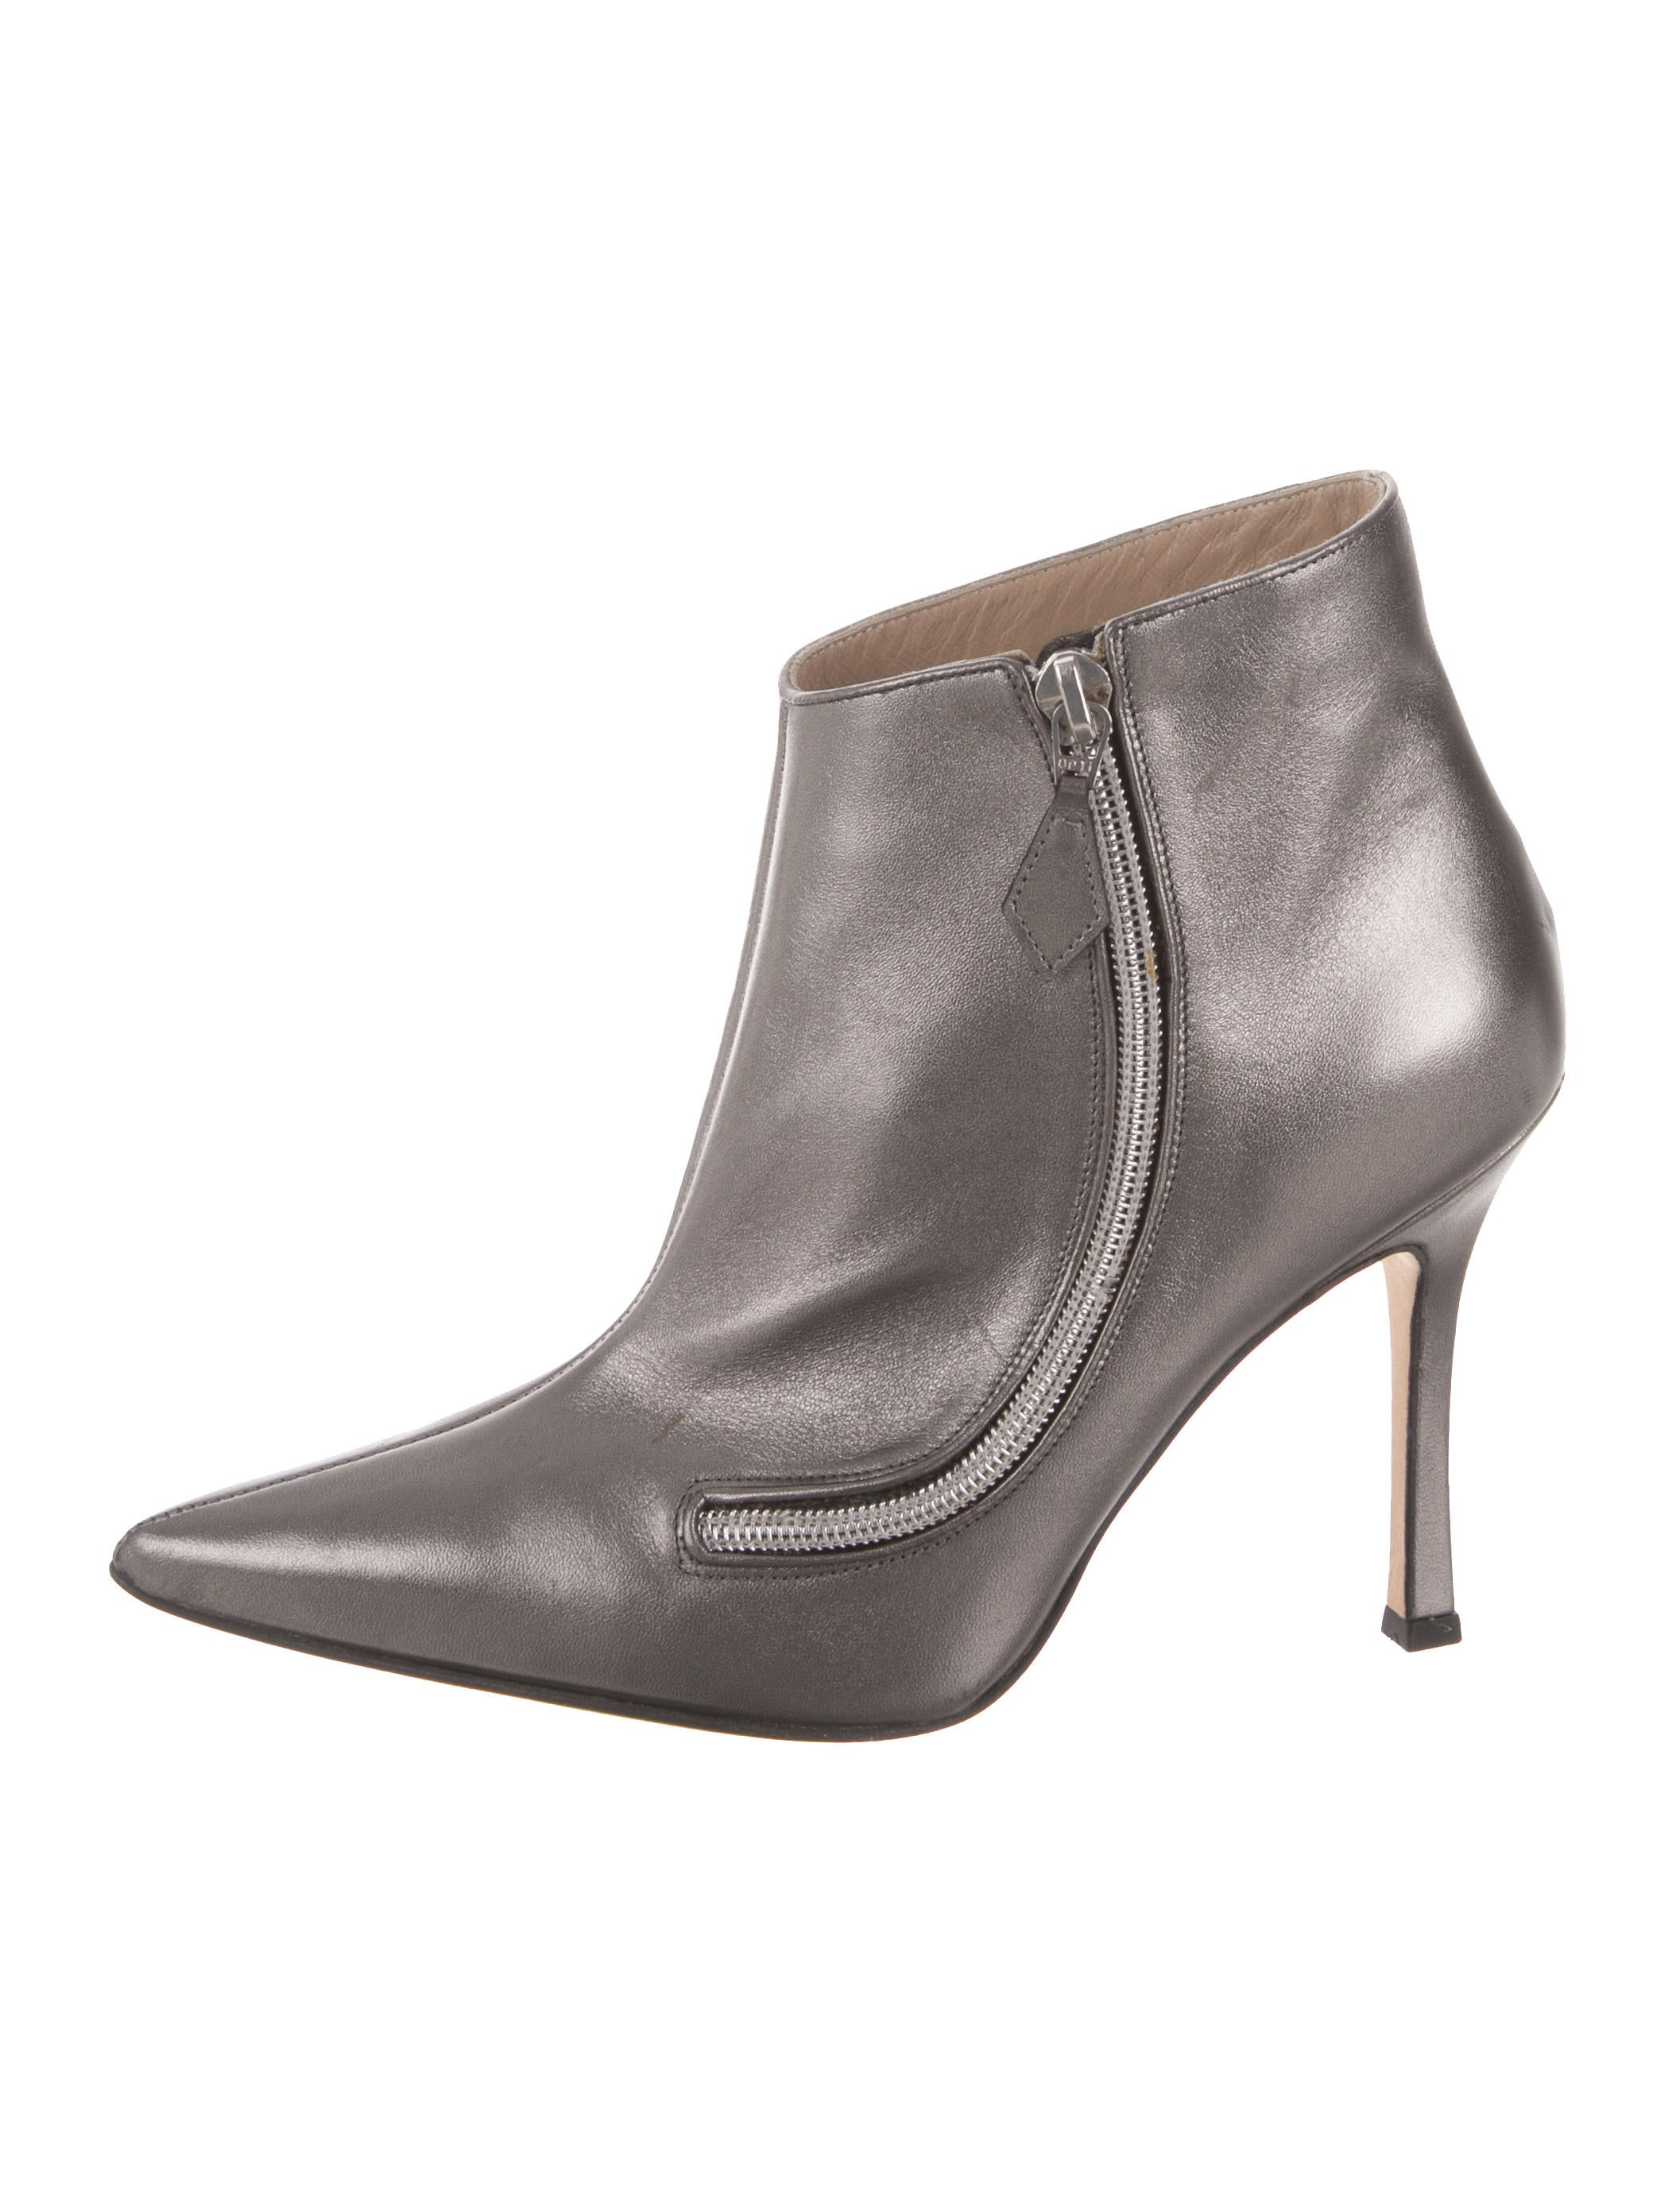 Manolo Blahnik Pointed-Toe Ankle Boots - Shoes - MOO55061 ...